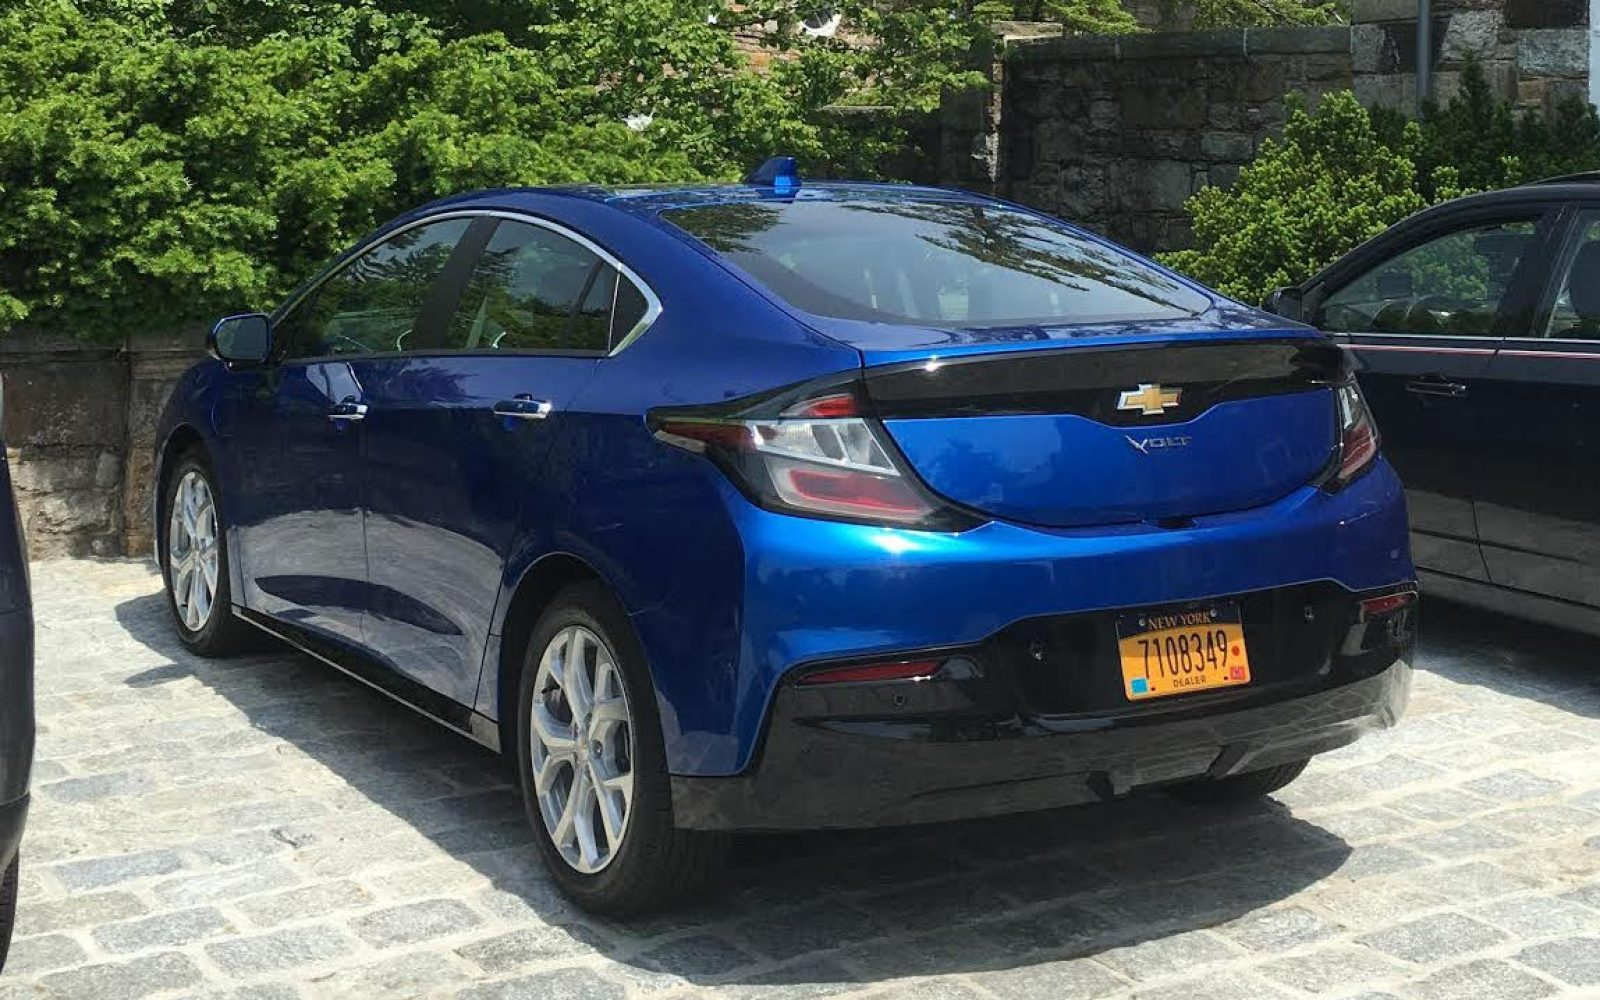 2017 Chevy Volt Diary Day 2 Hit The Road Jack Take Kids Car Shopping